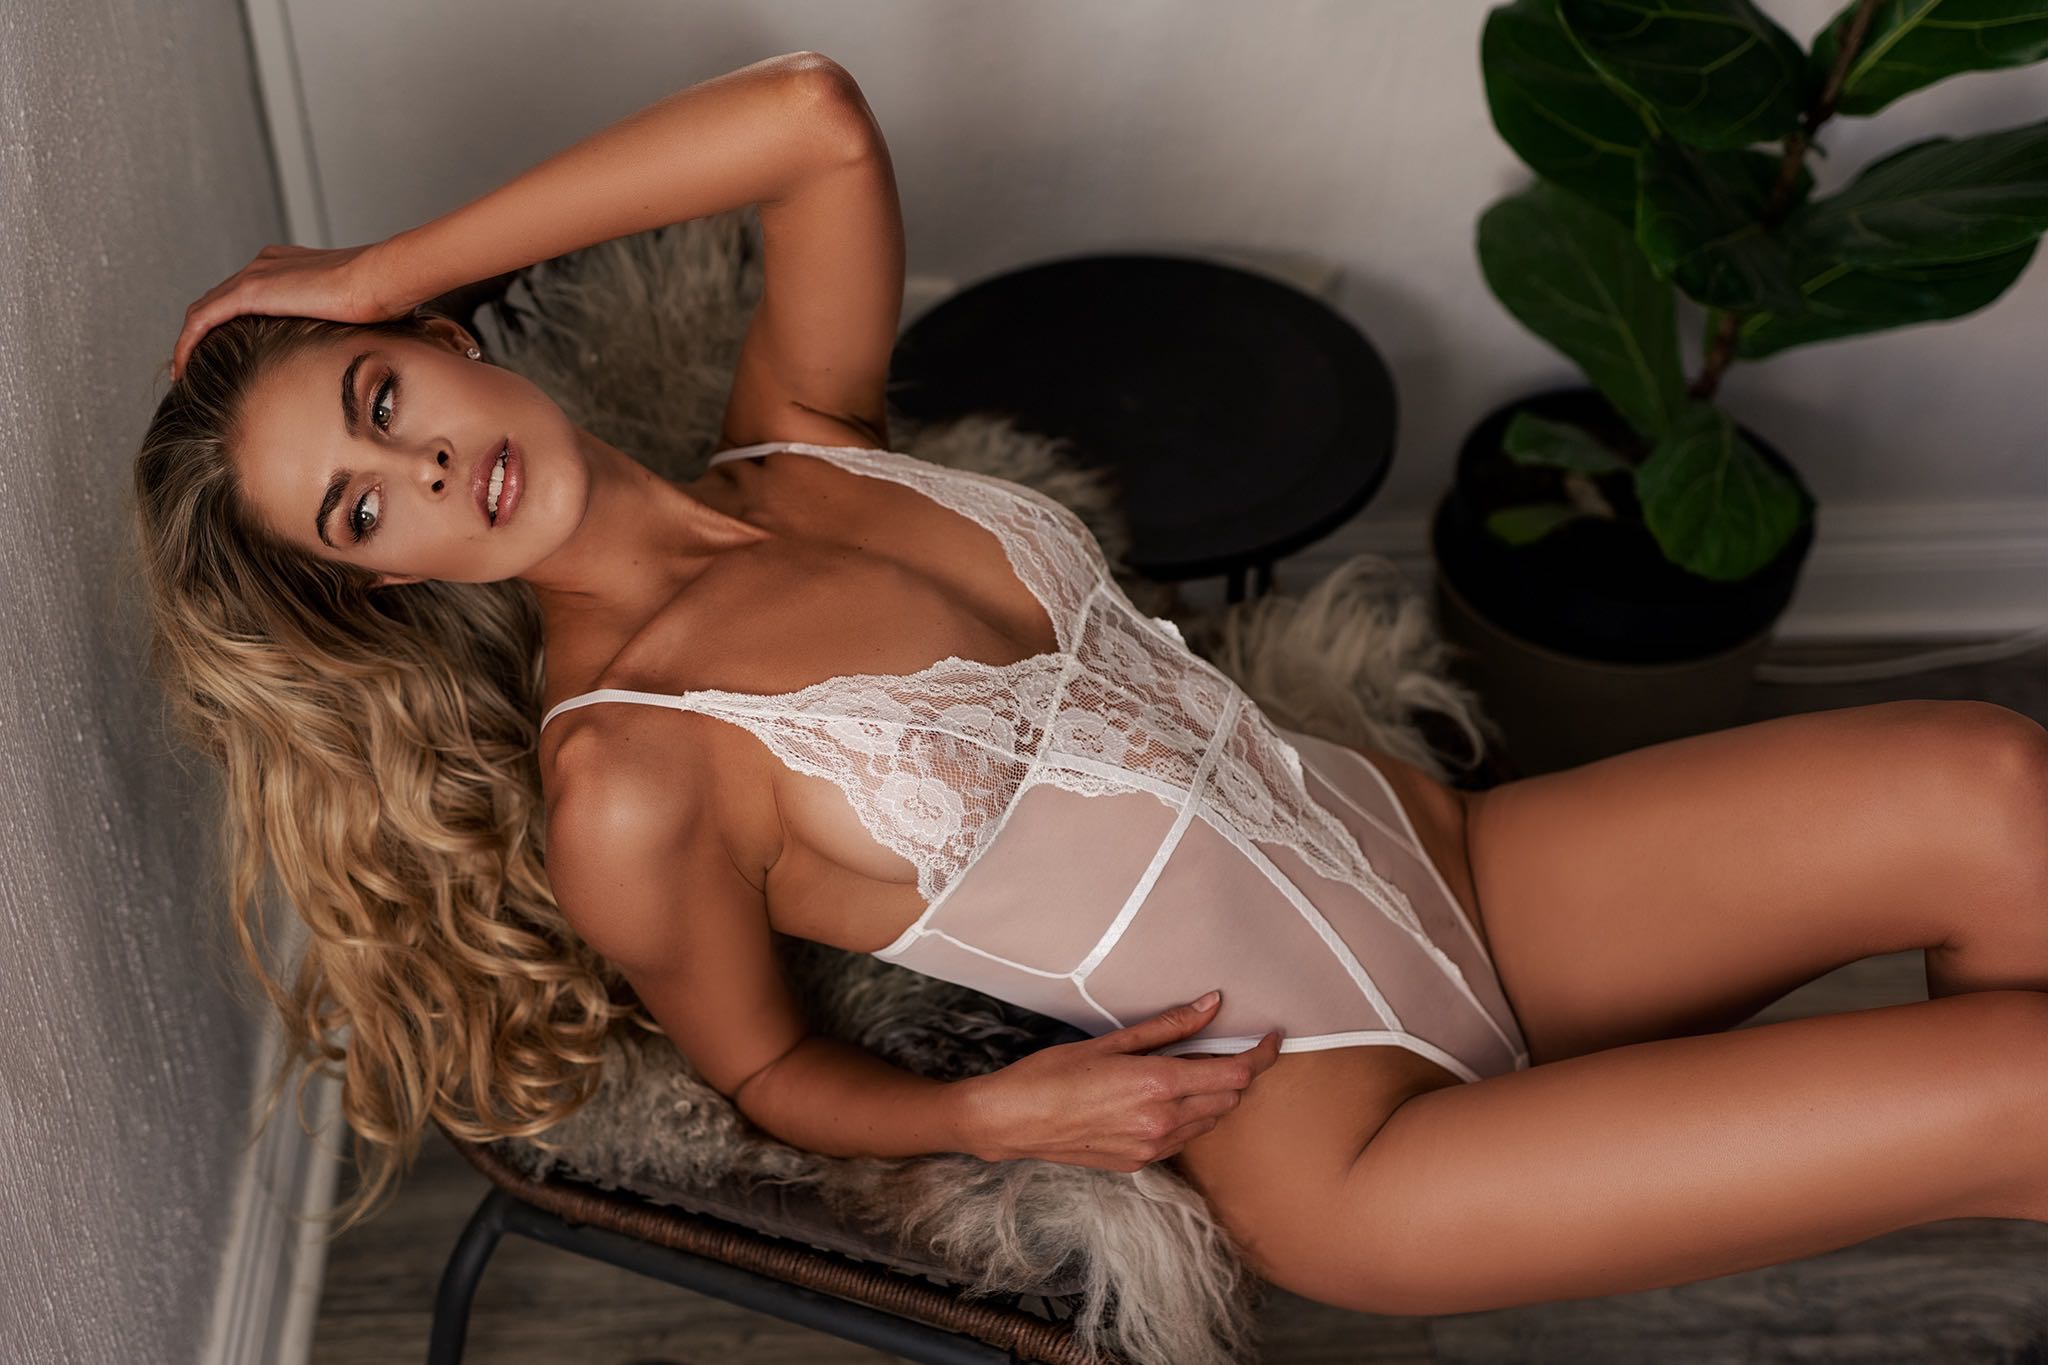 IntroducingKatelyn Barkhuizen as our featured LW Babe of the Week.